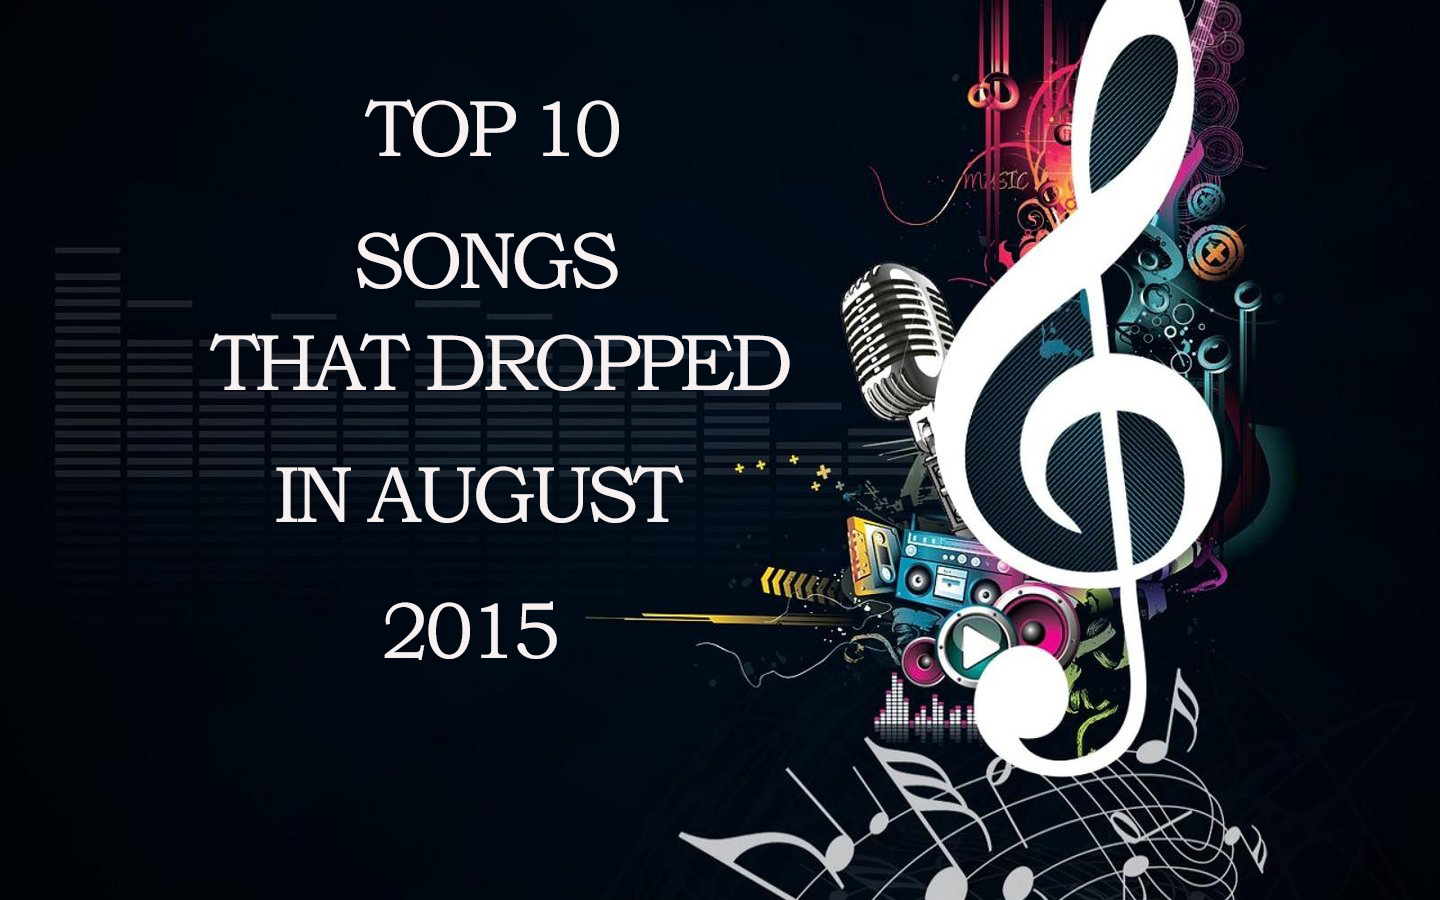 TO10SONGS